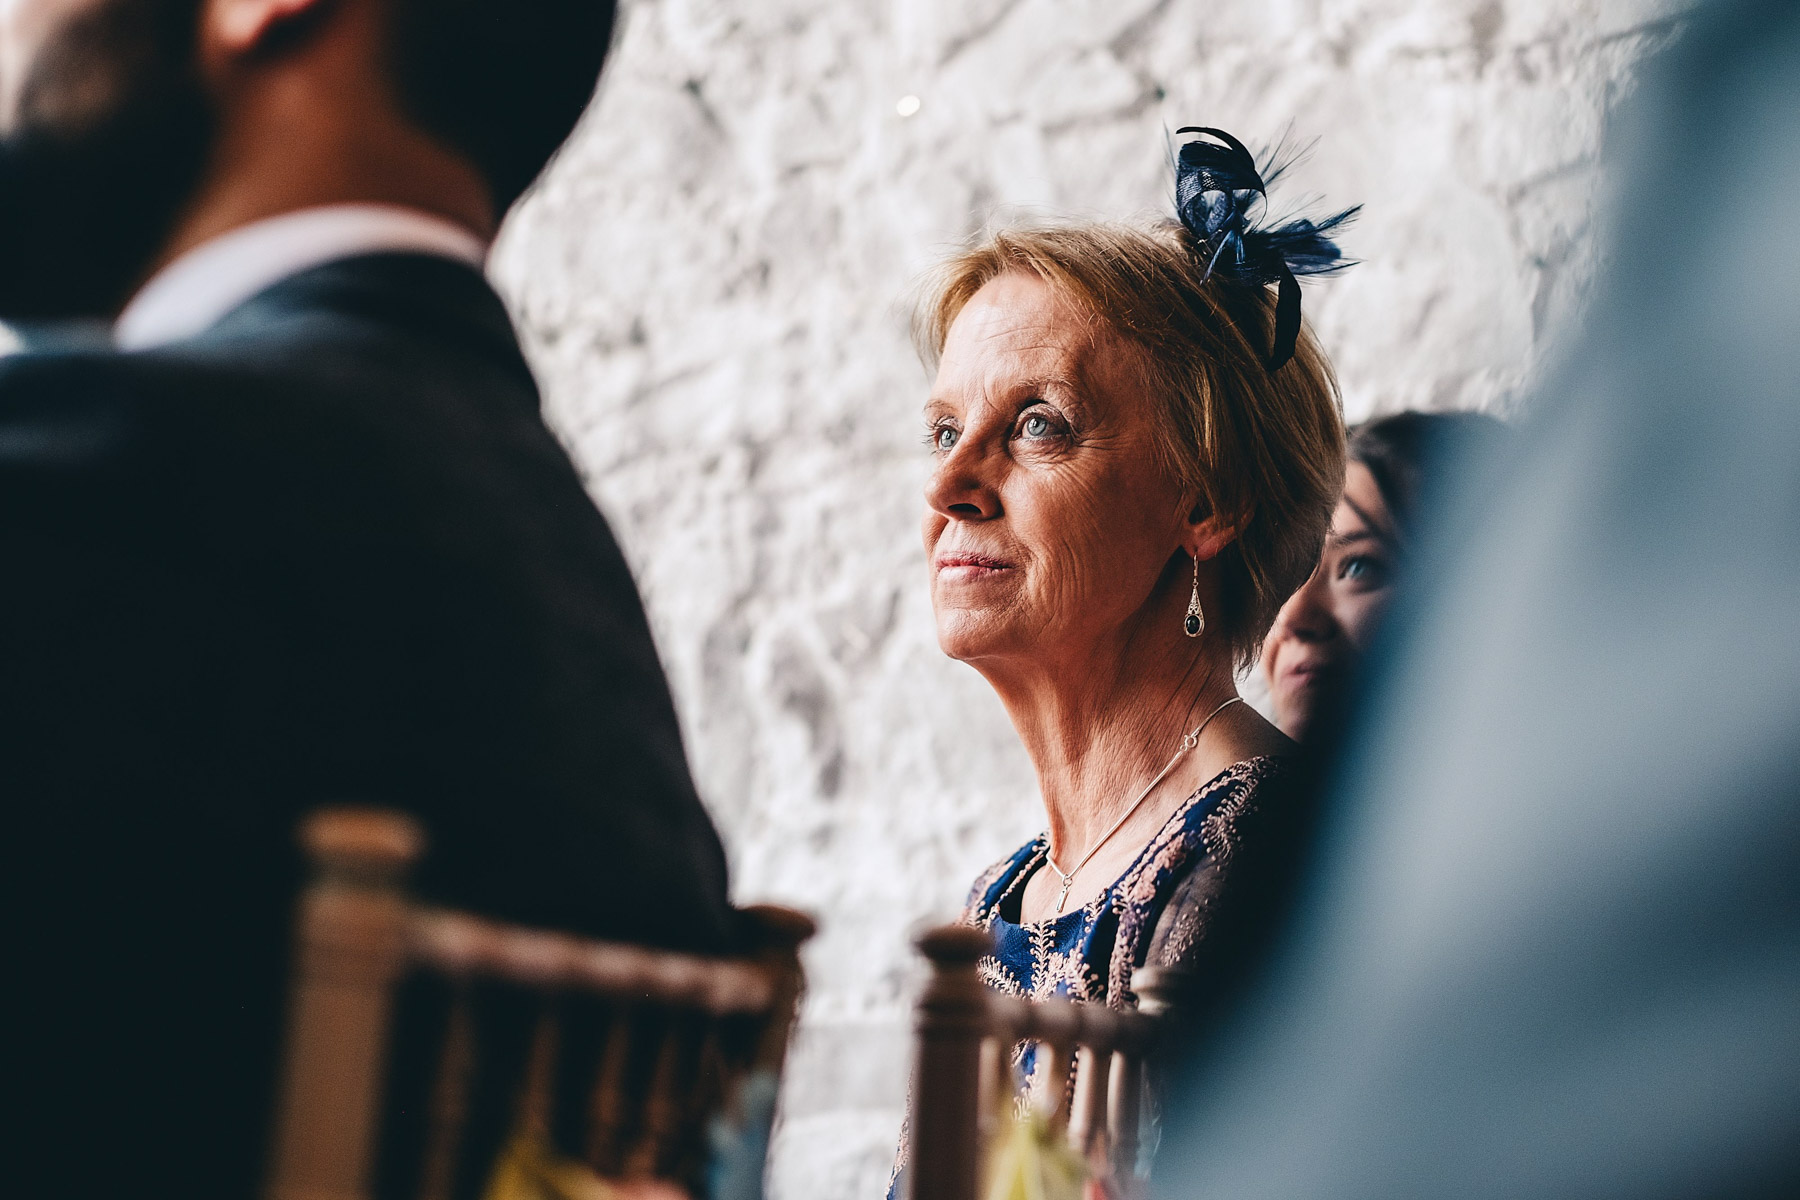 Mother of the groom looks on at wedding